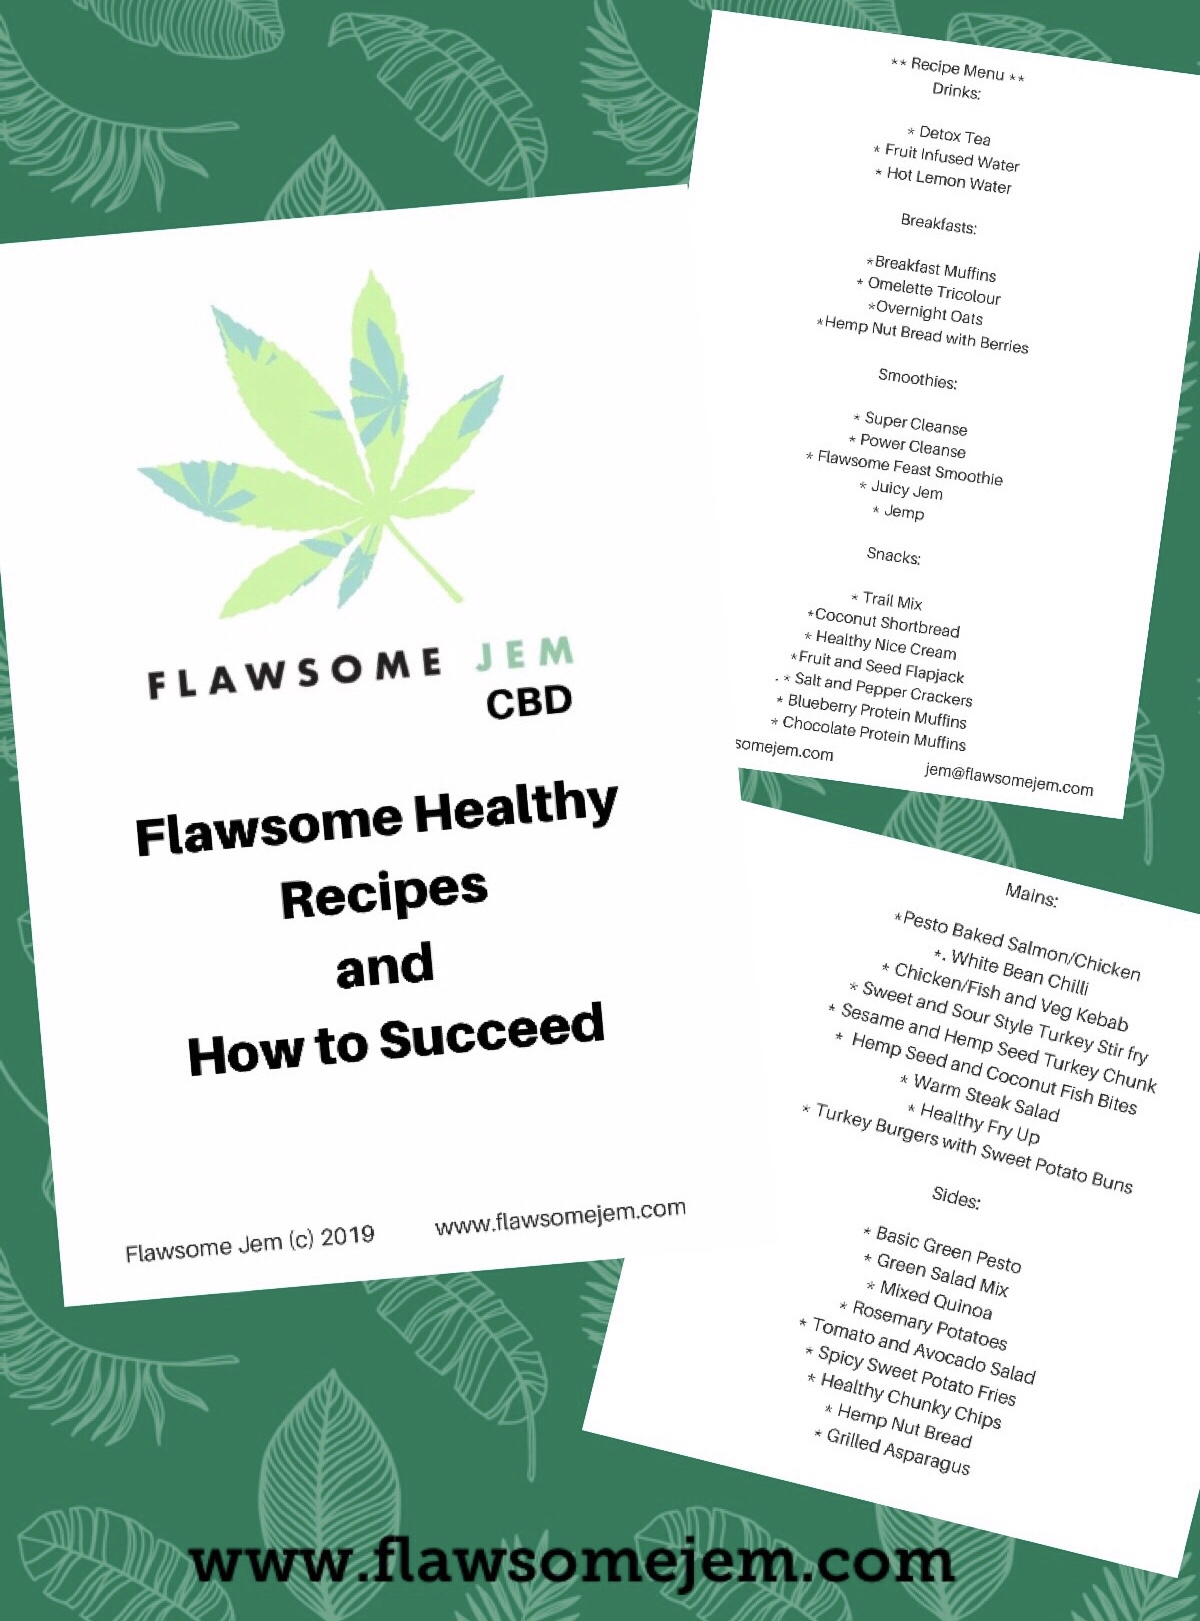 Flawsome Recipes and How to Succeed Guide